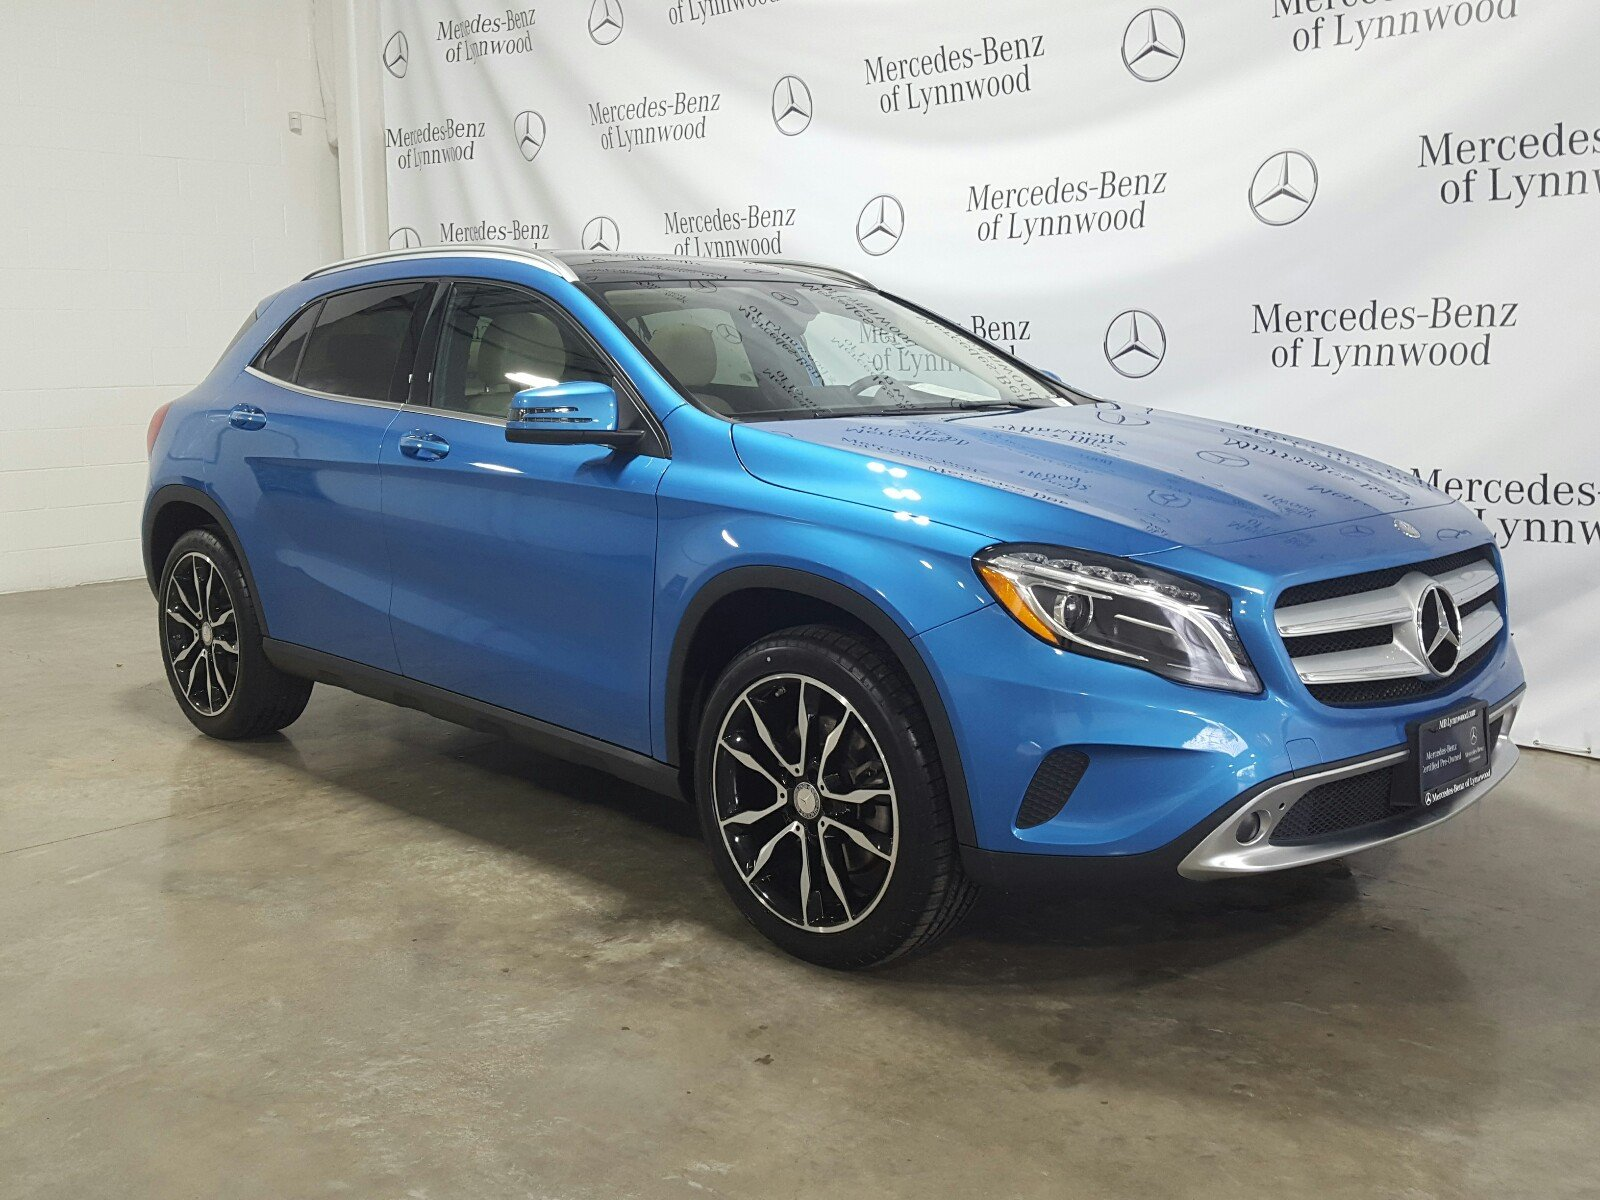 Certified Pre Owned 2016 Mercedes Benz GLA GLA 250 4MATIC SUV in